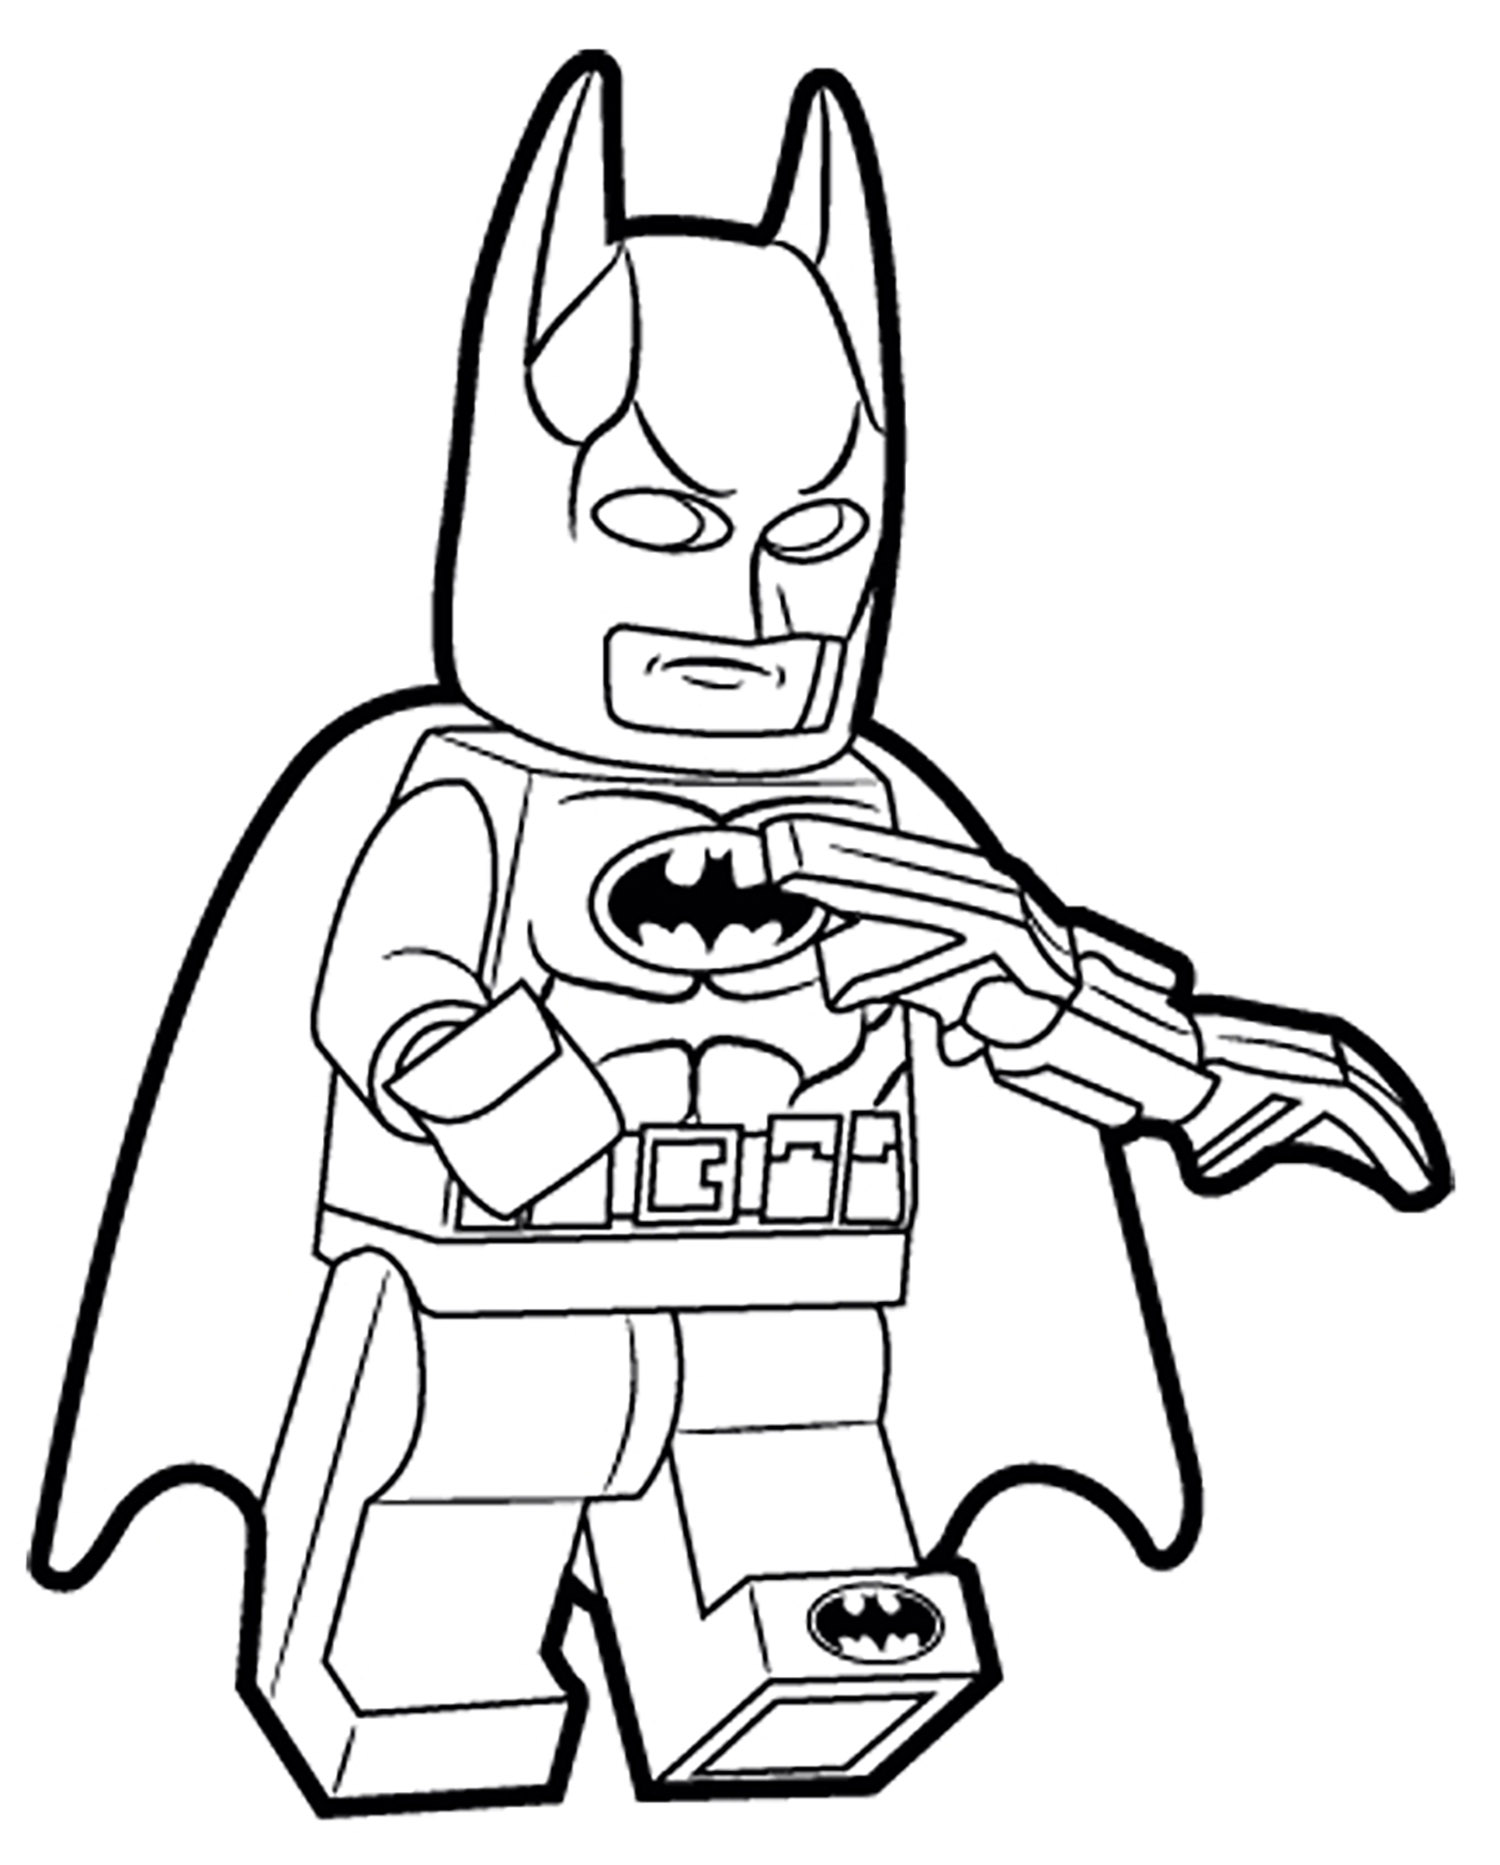 Lego batman and robin printable Coloring page for kids lego robin ... | 1865x1500